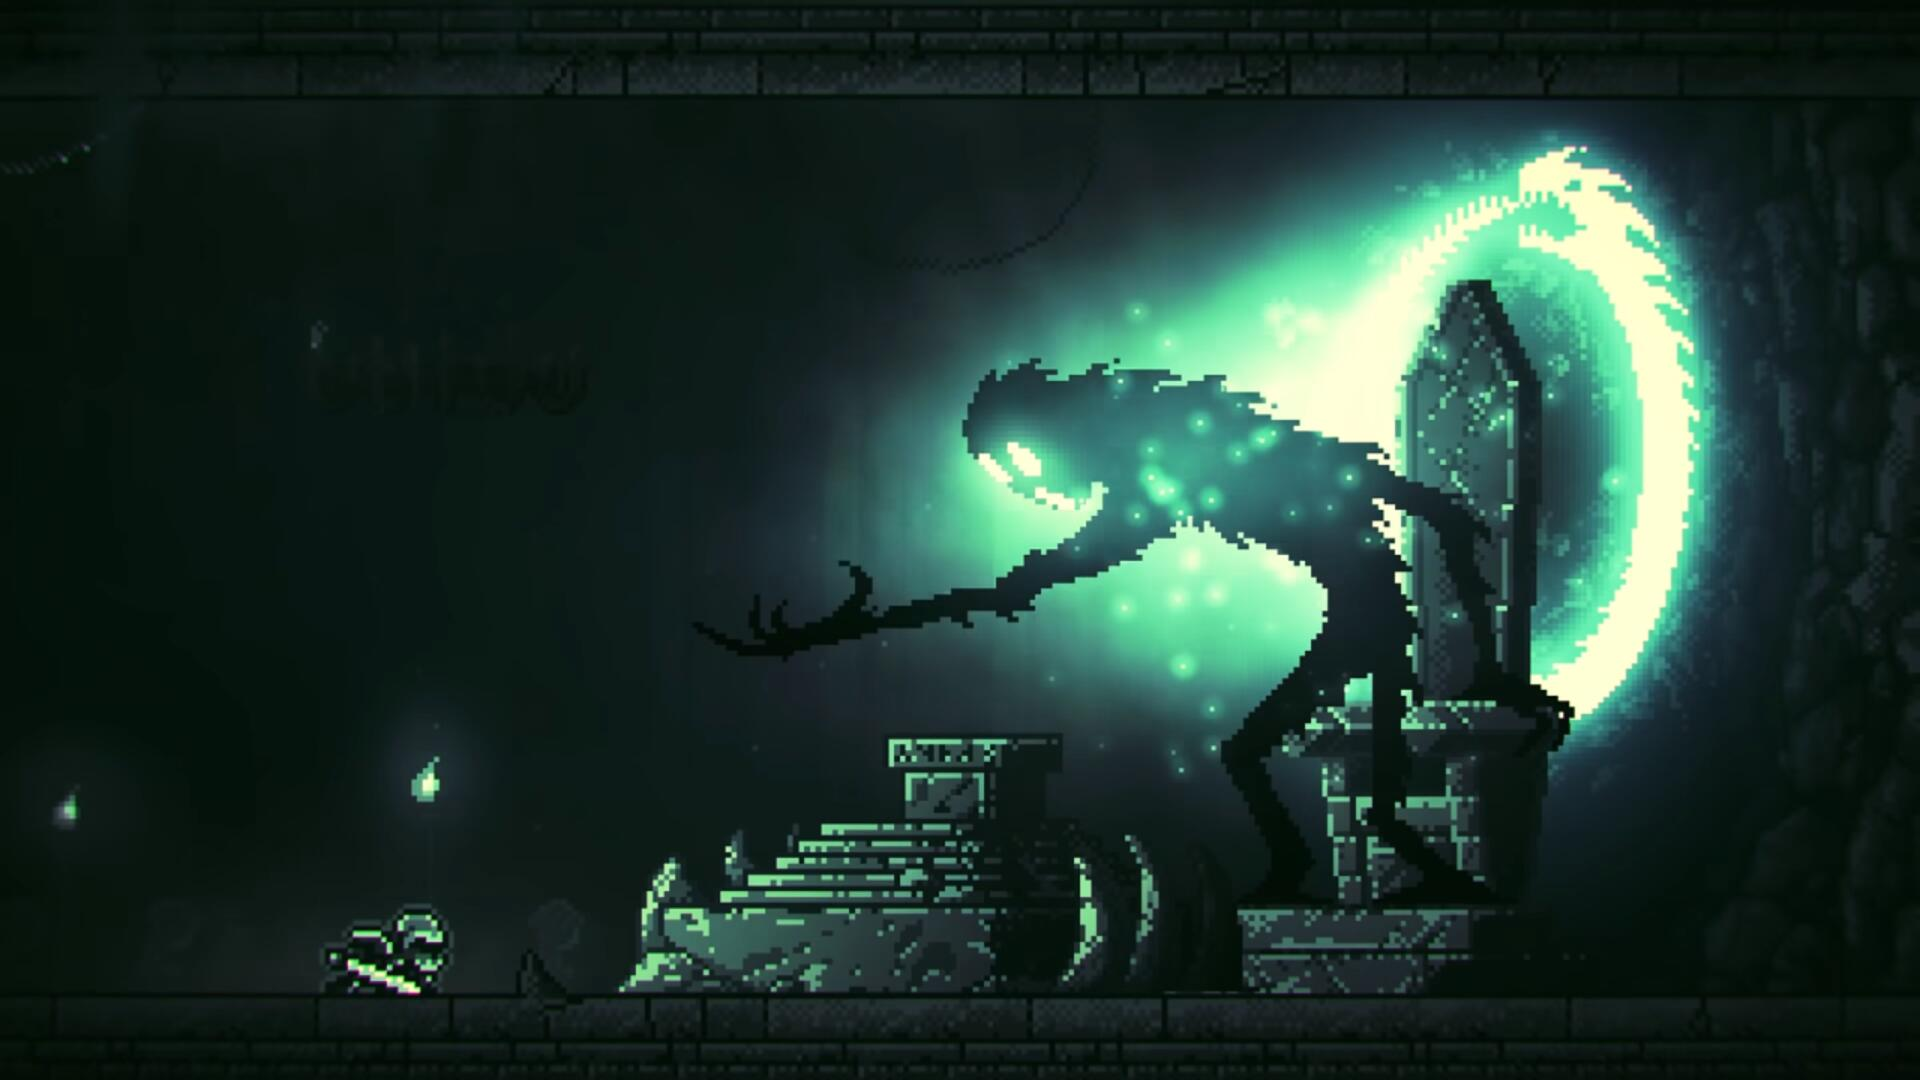 Five More Games Arrive on Apple Arcade, Including Pixel Horror and Mobile RTS